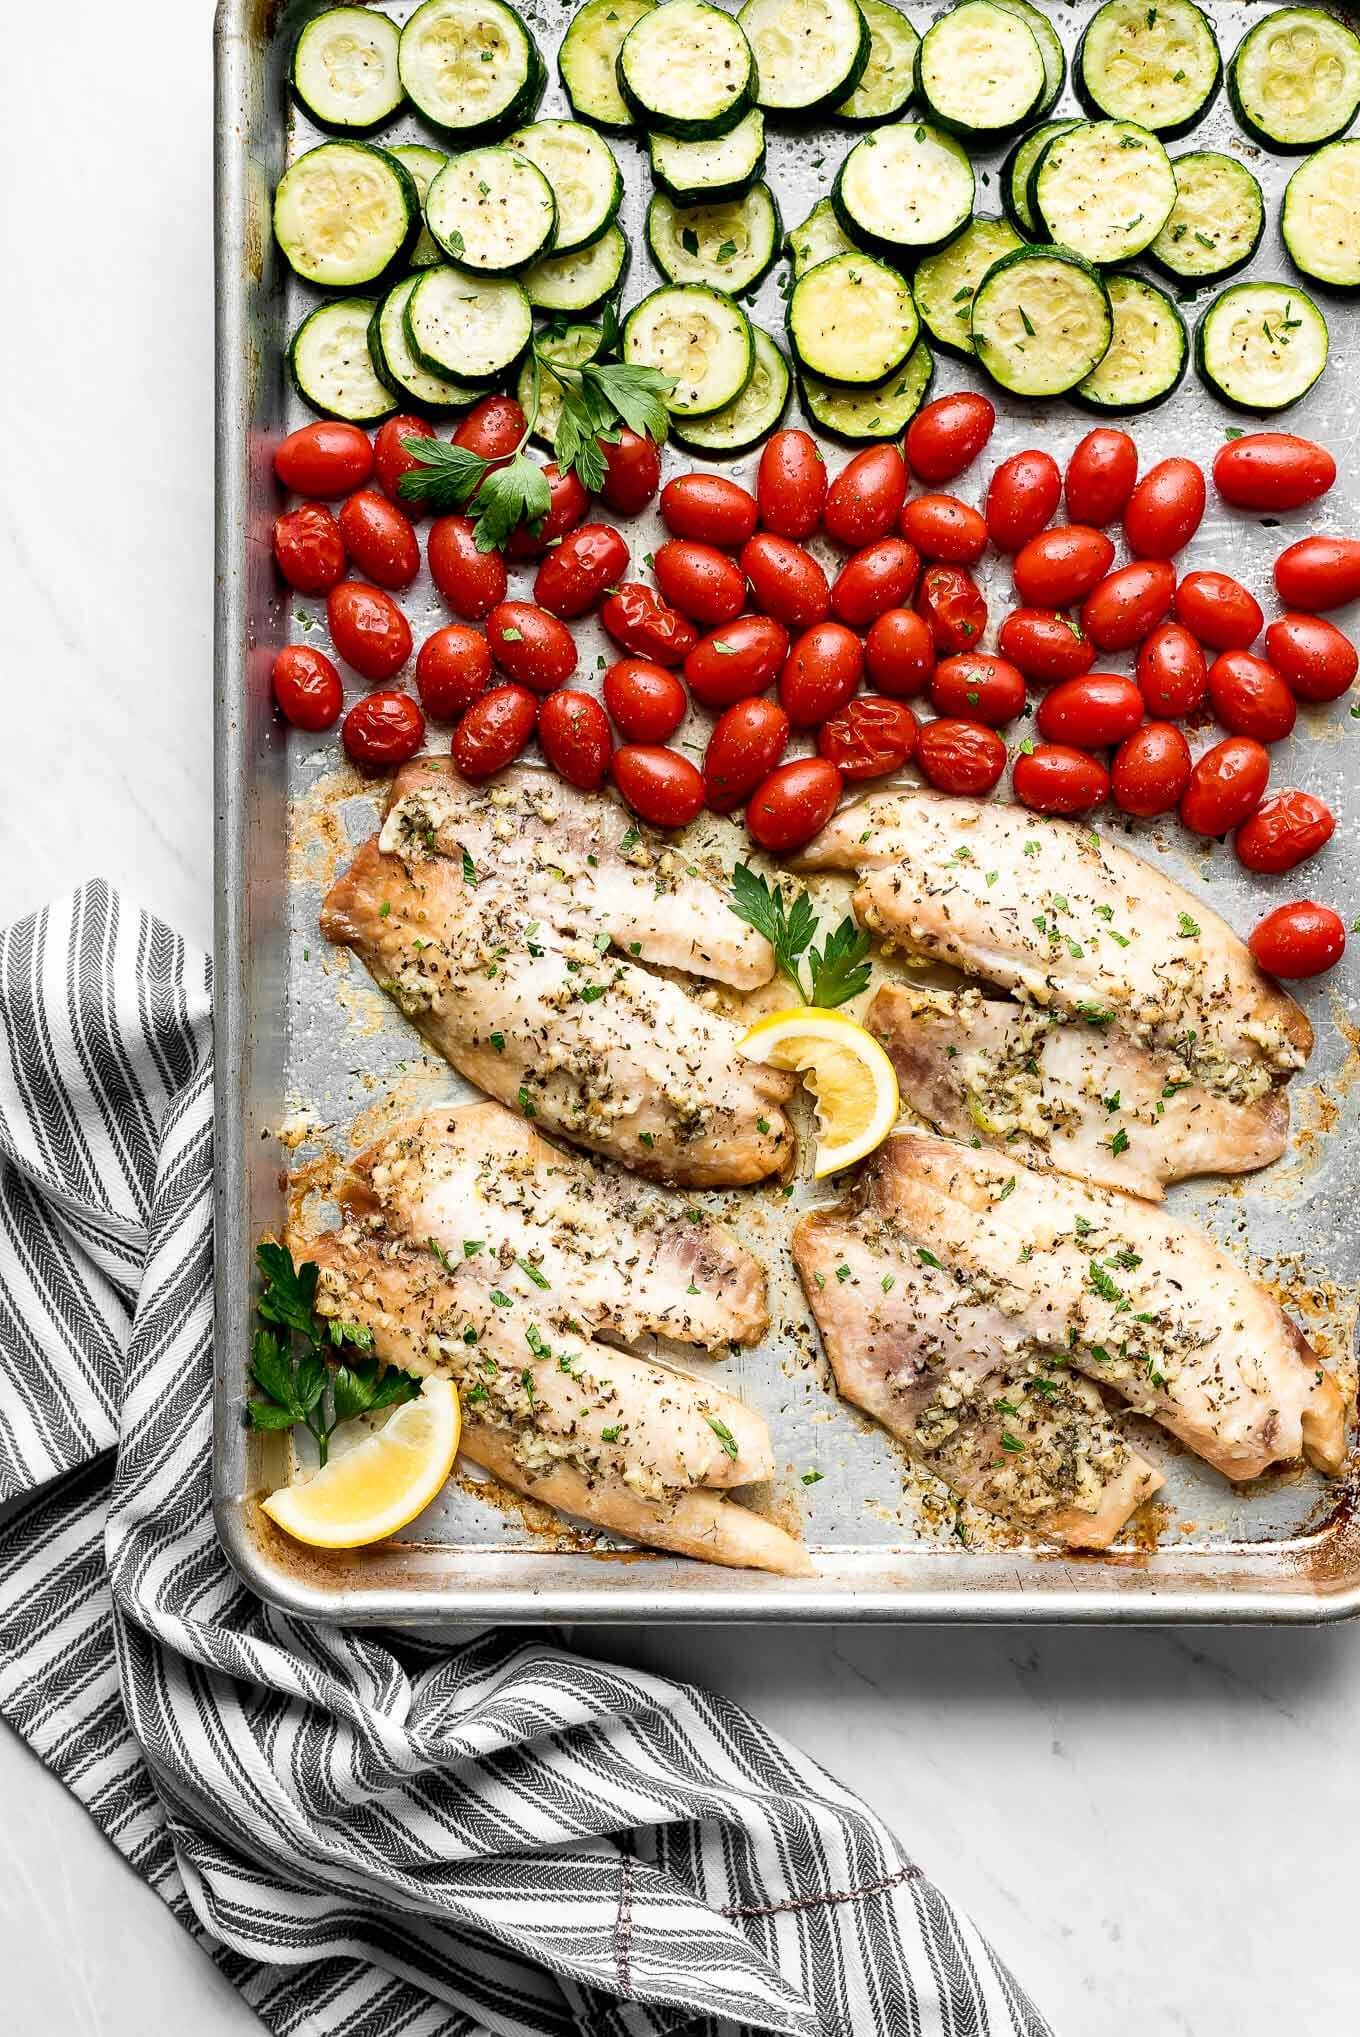 A sheet pan full of baked tilapia, tomatoes, and zucchini.